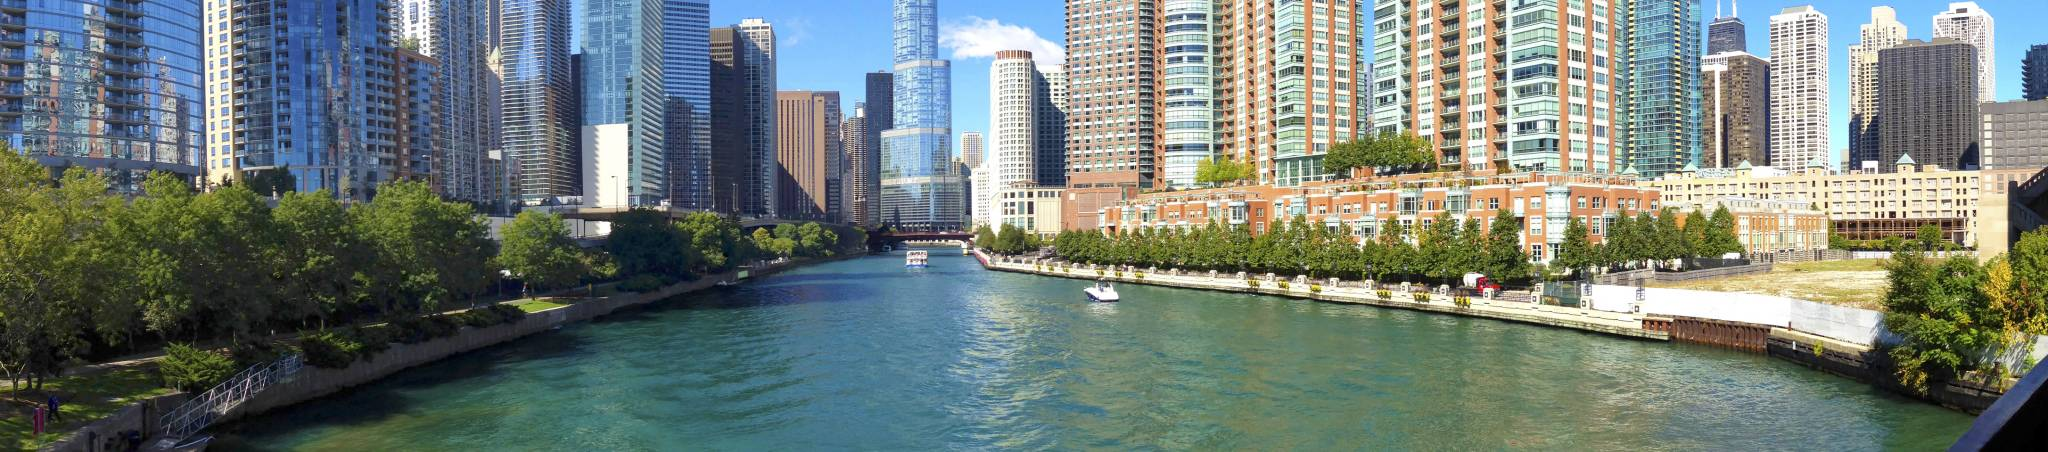 chicago architecture foundation boat tour coupon